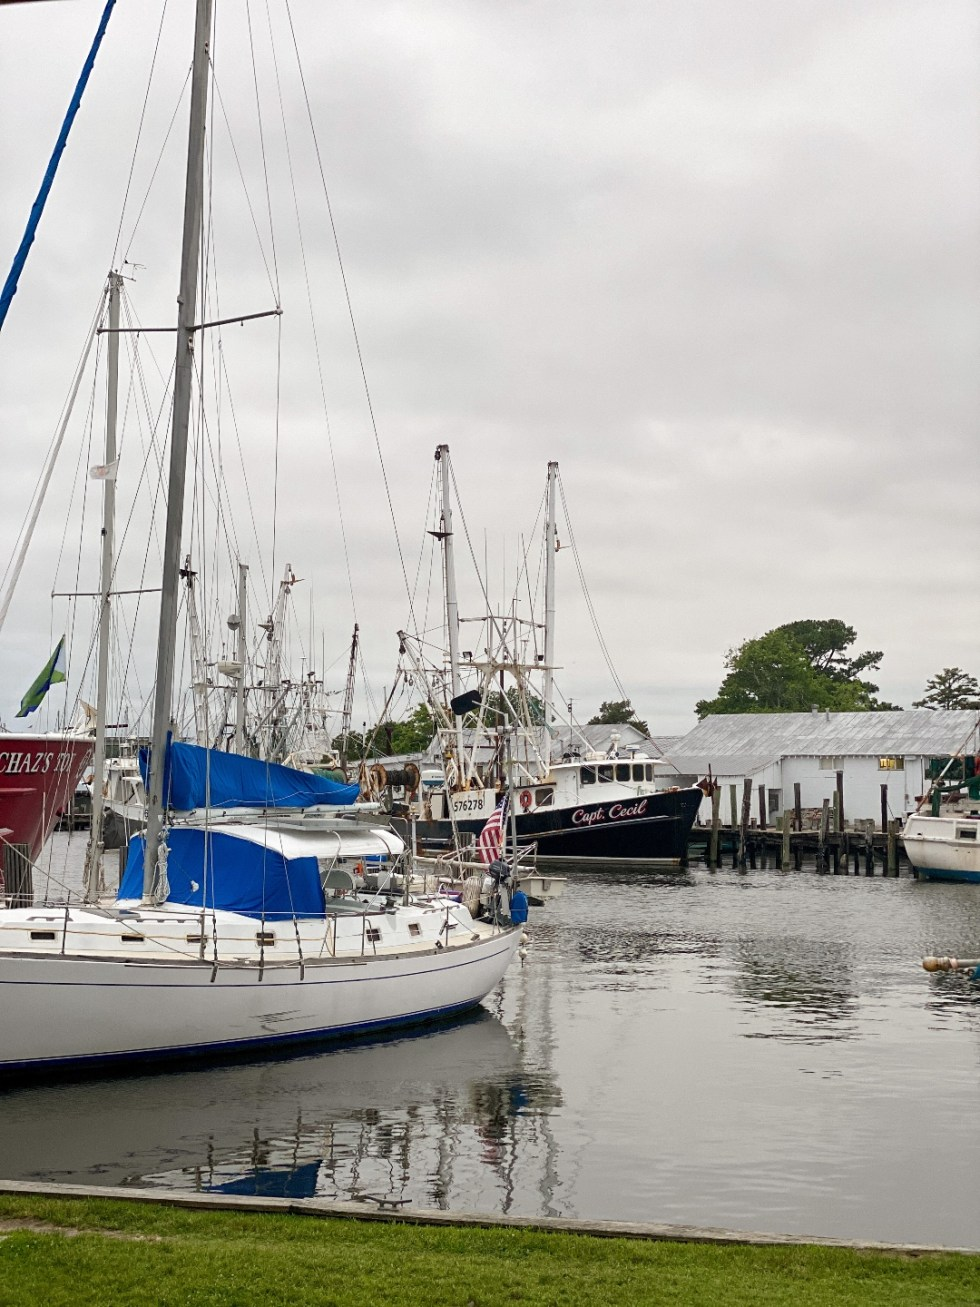 What to Do in Oriental, NC - I'm Fixin' To - @imfixintoblog | Things to do in Oriental NC by popular NC travel blog, I'm Fixin' To: image of some boats docked in the Oriental NC marina.